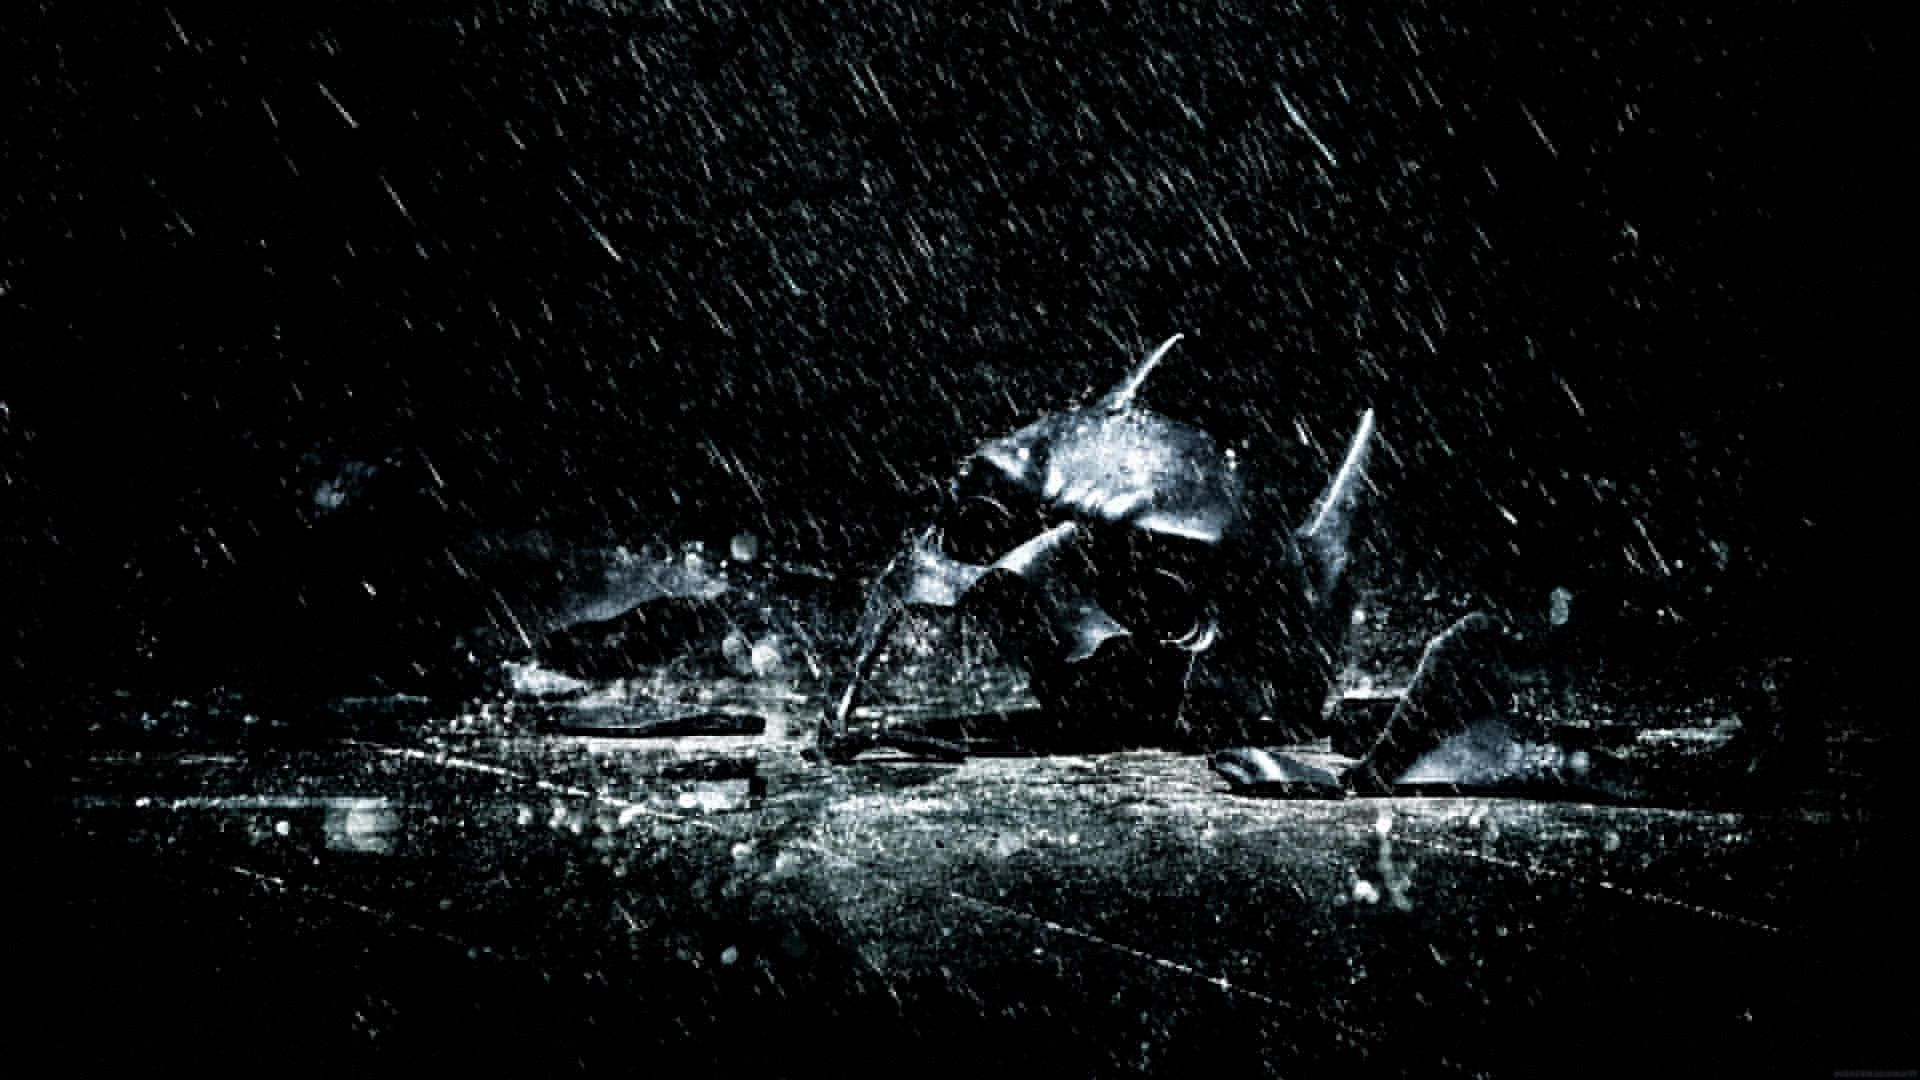 Batman The Dark Knight Wallpapers Full Hd ~ Sdeerwallpaper